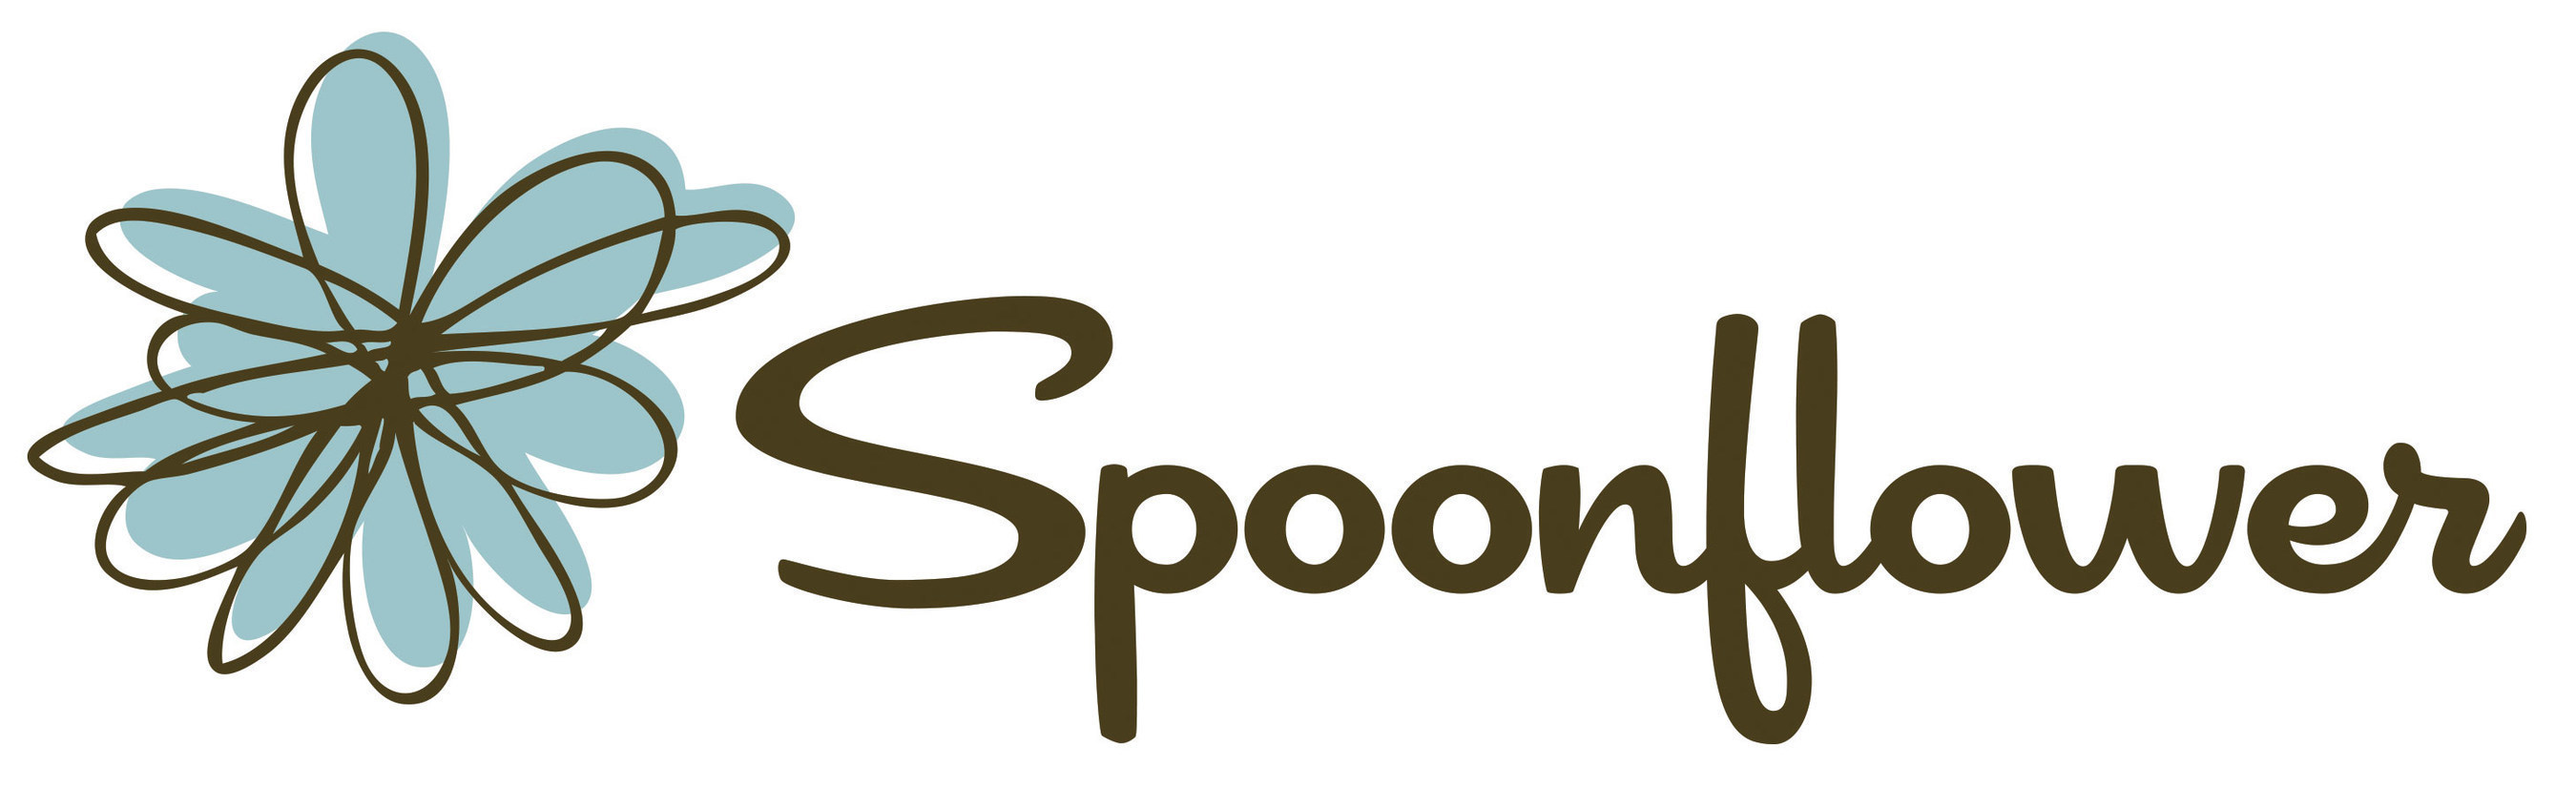 Durham-Based Spoonflower Lands $25M Investment To Transform Textile Industry